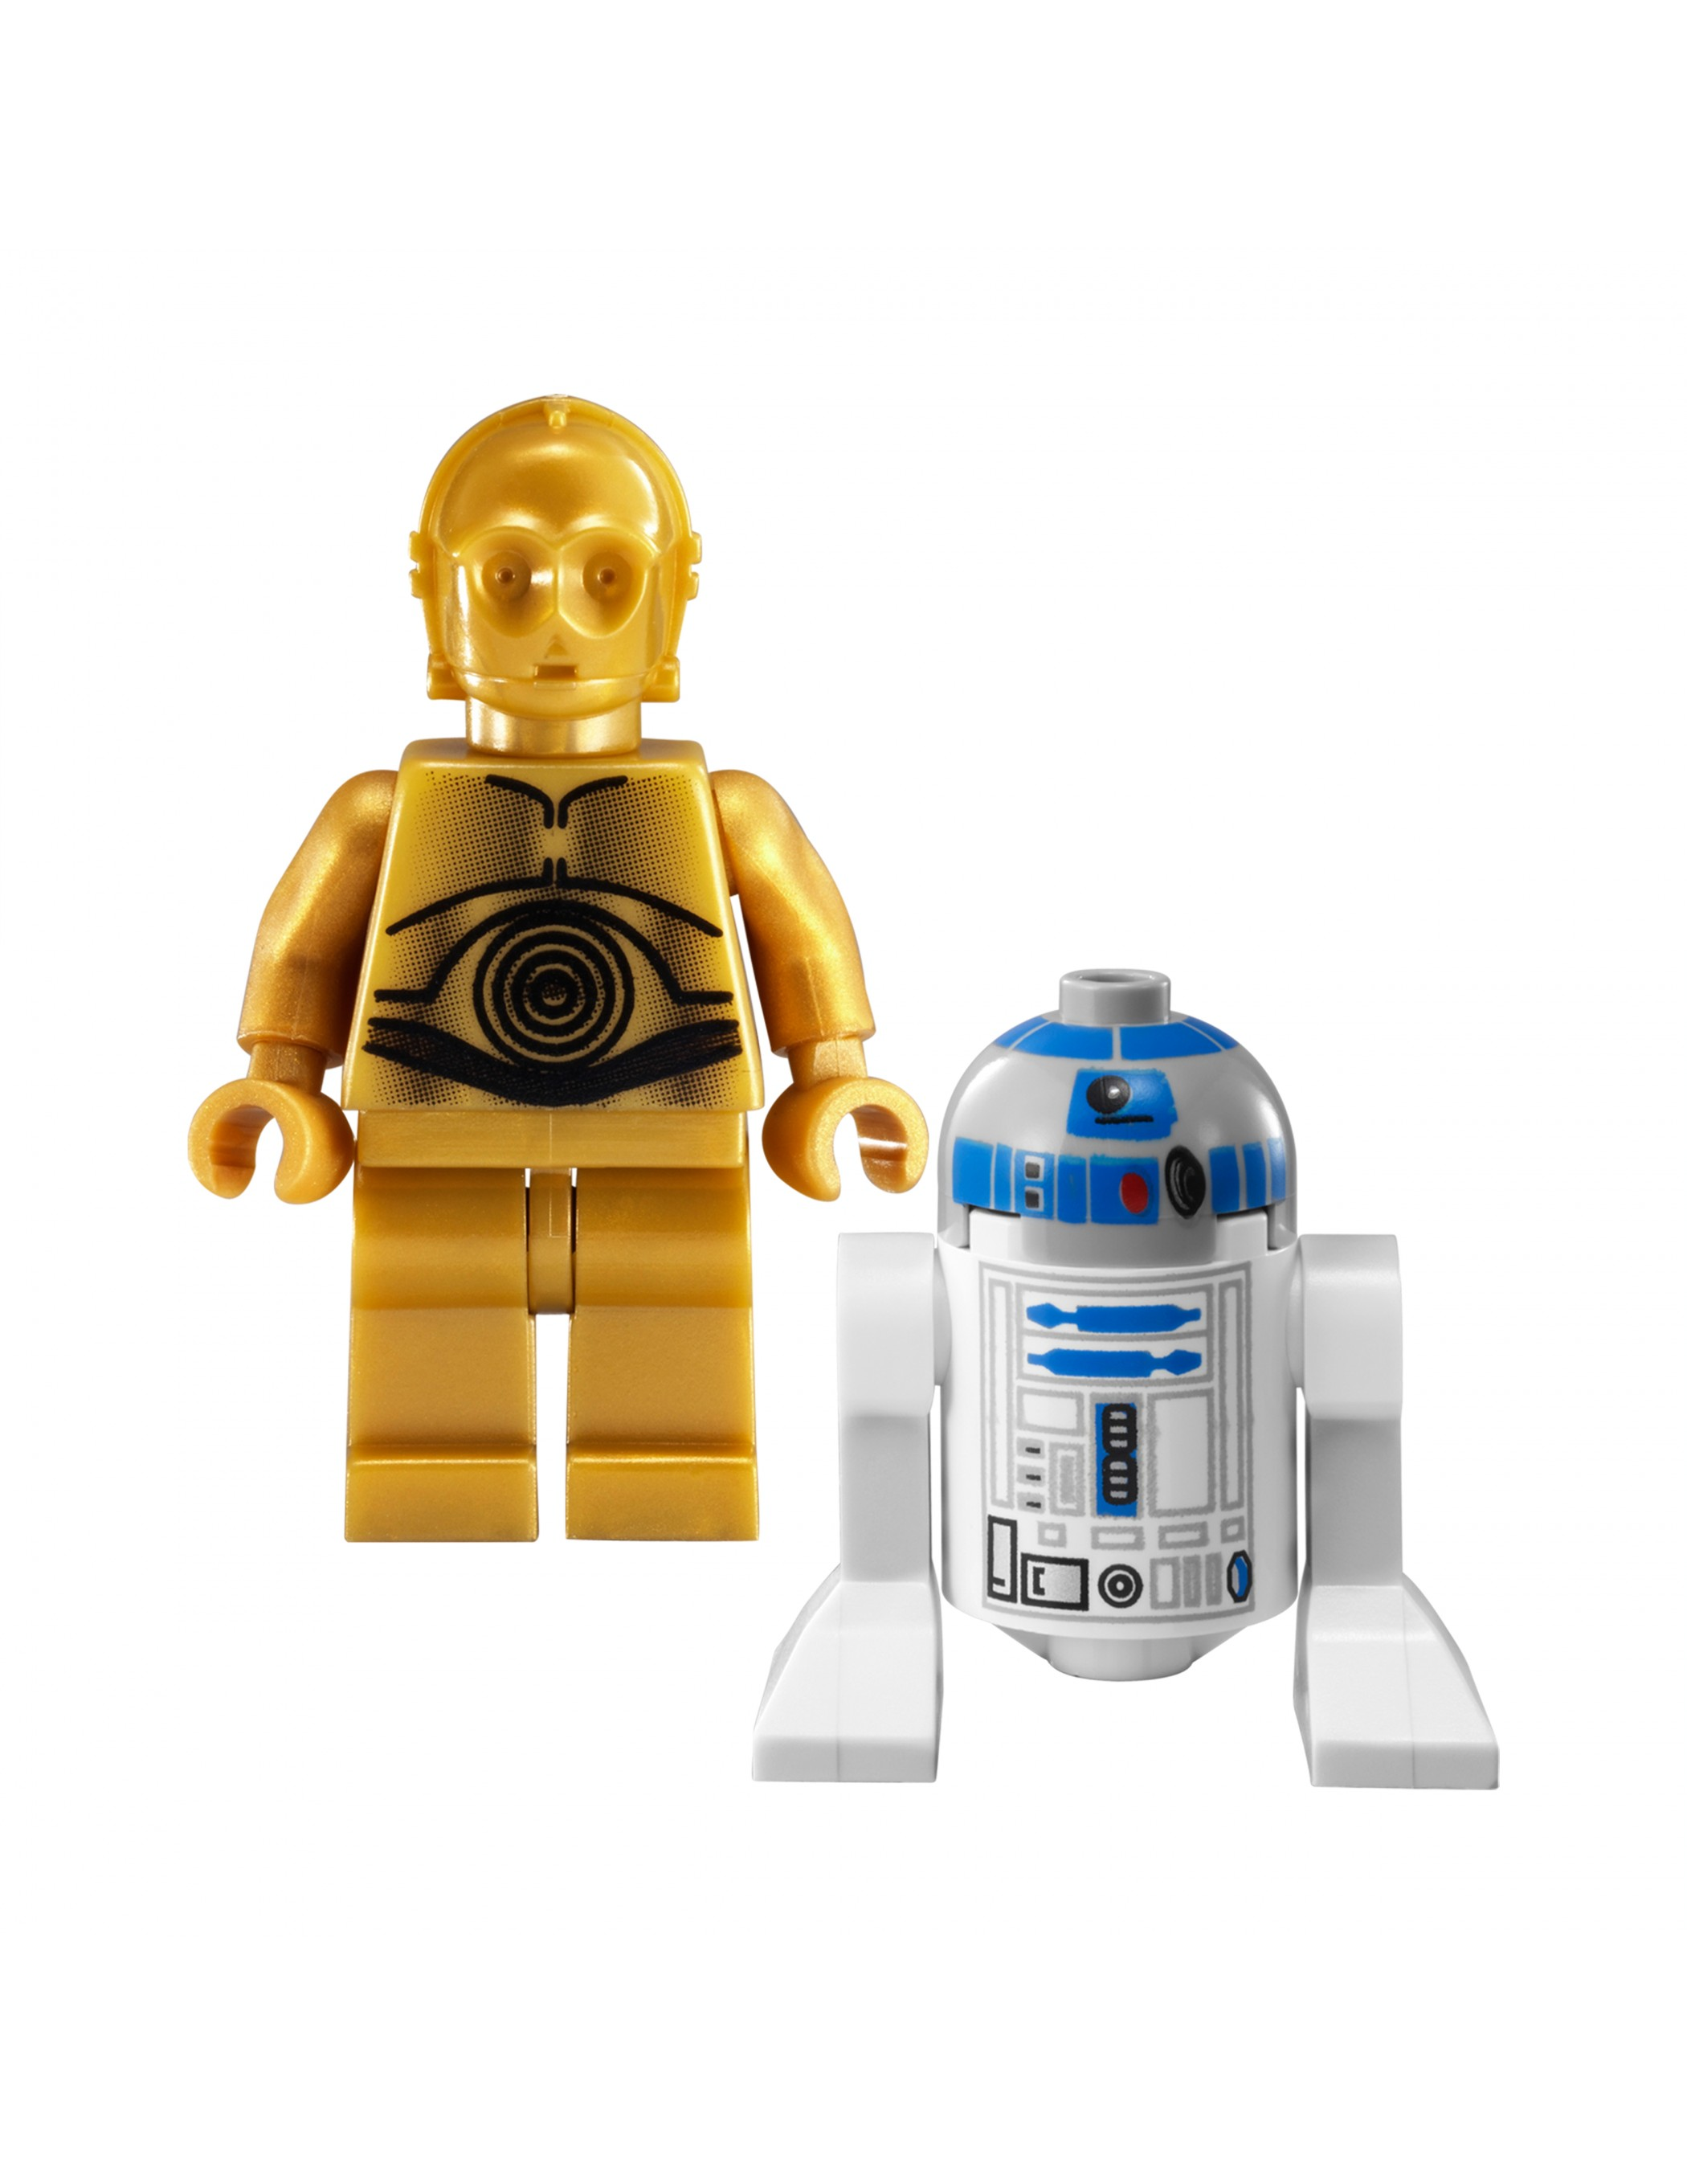 R2d2 And C3po Lego Image Gallery lego c 3...